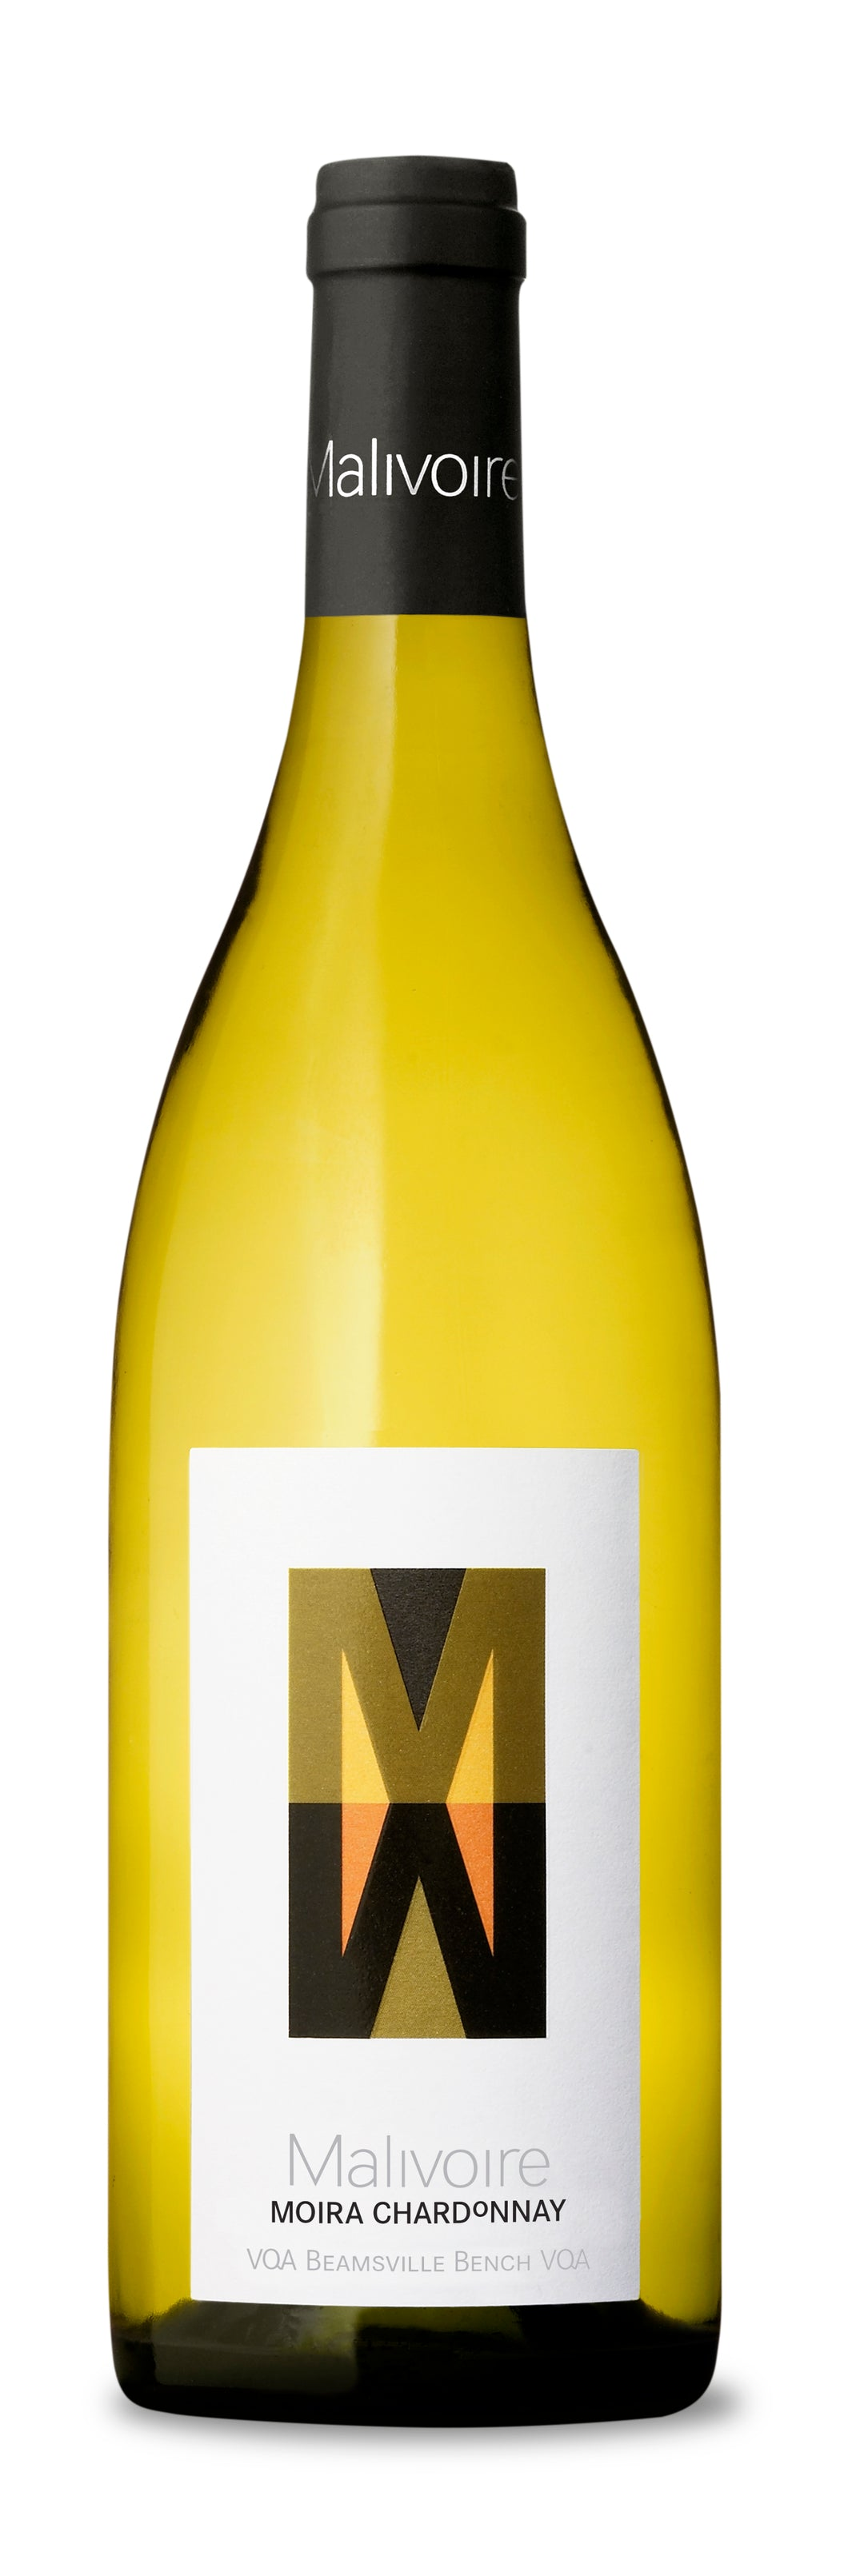 LIBRARY - 2012 Moira Chardonnay INSIDERS